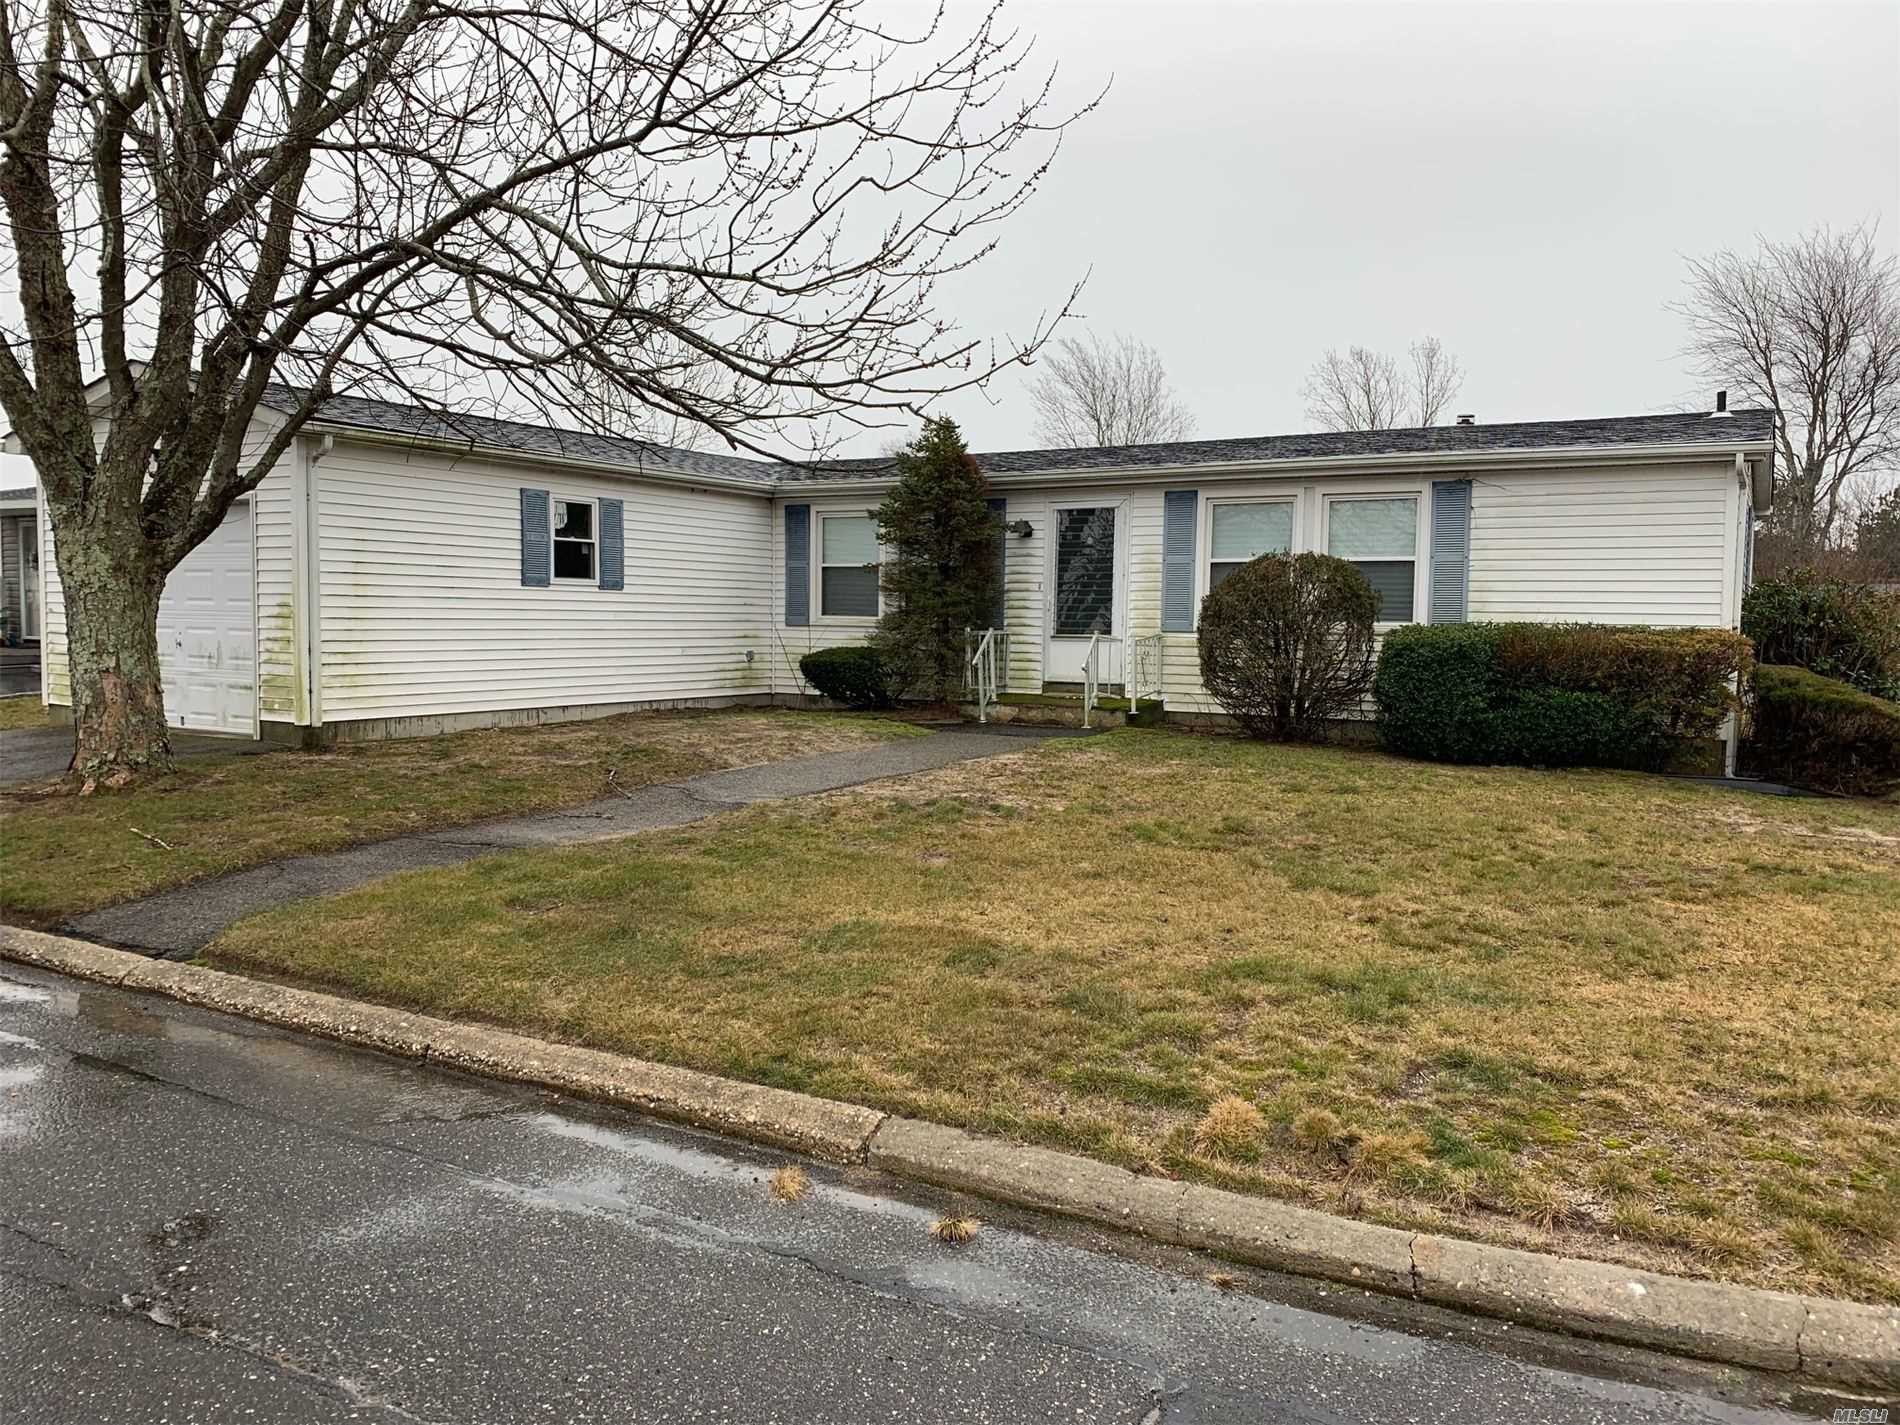 Property for sale at 17 Holly Drive, Manorville NY 11949, Manorville,  New York 11949